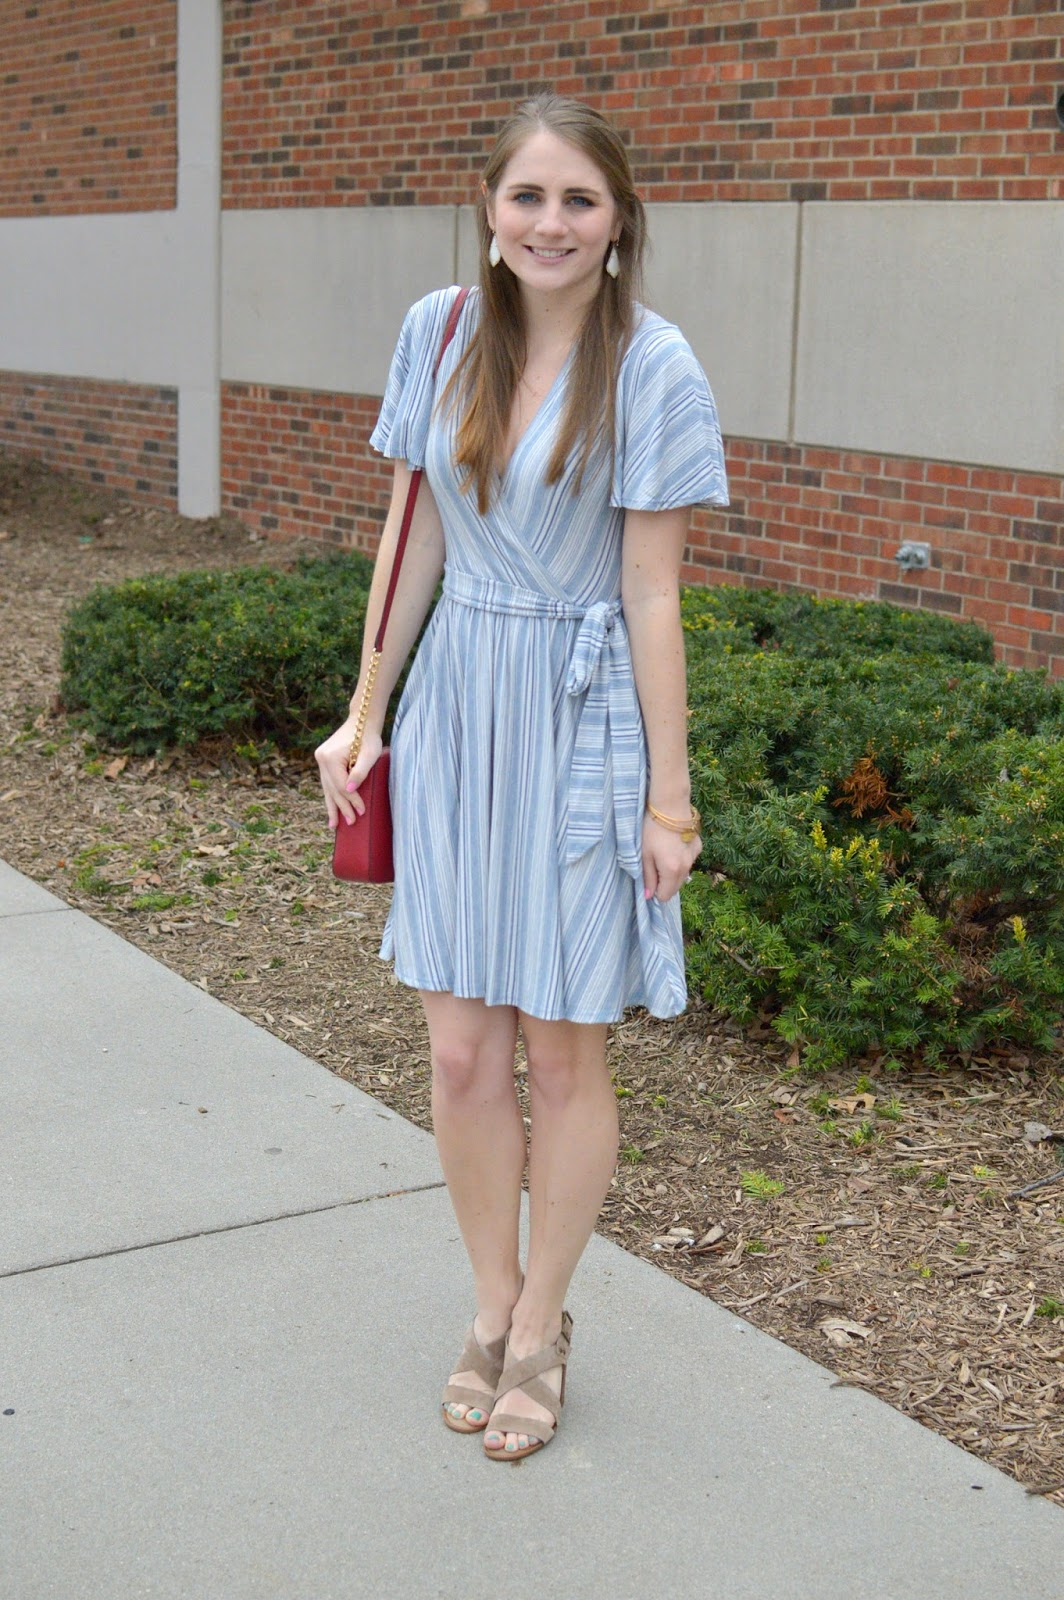 dresses for spring : blue and white cotton striped flutter sleeve dress